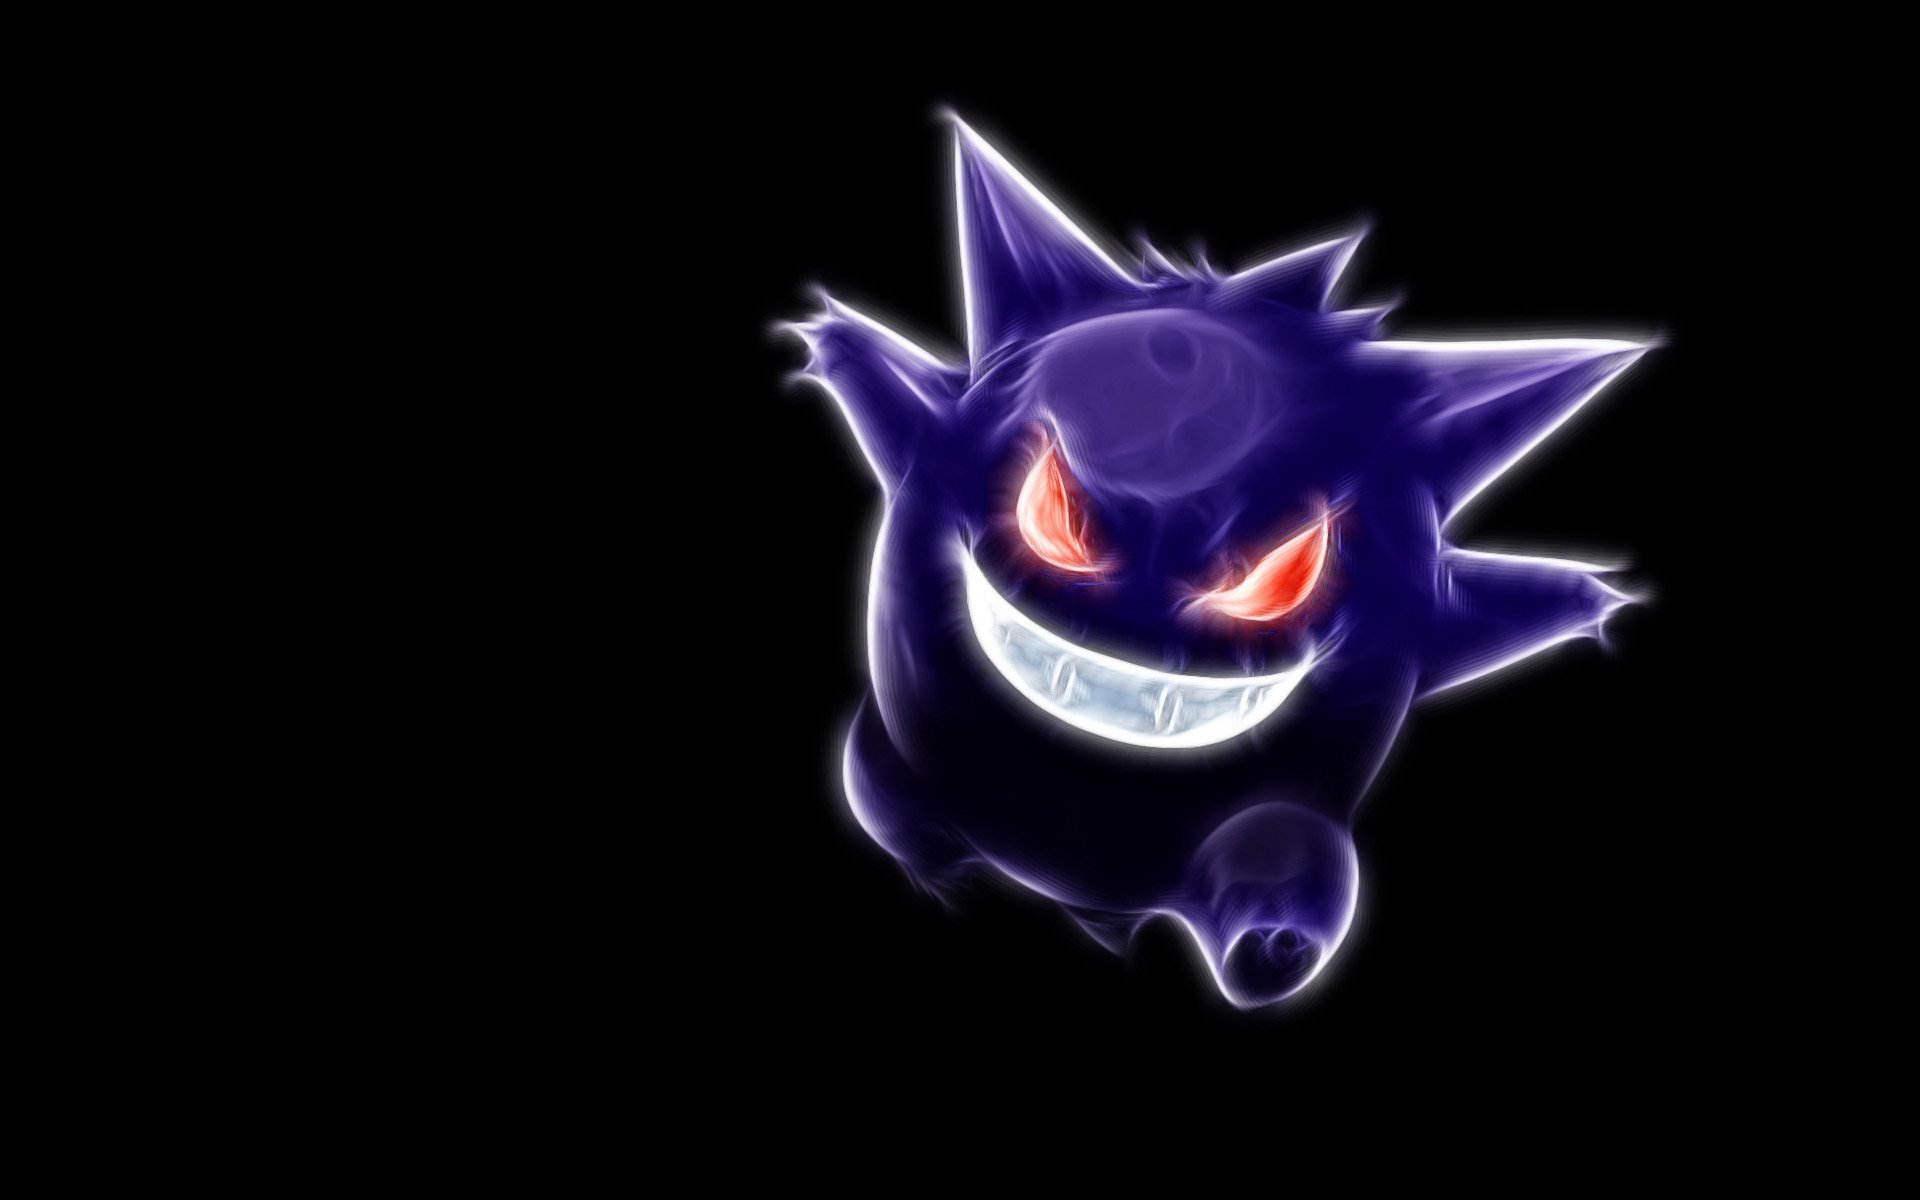 Anime - Pokemon  Gengar (Pokémon) Pokémon Ghost Ghost Pokémon Wallpaper